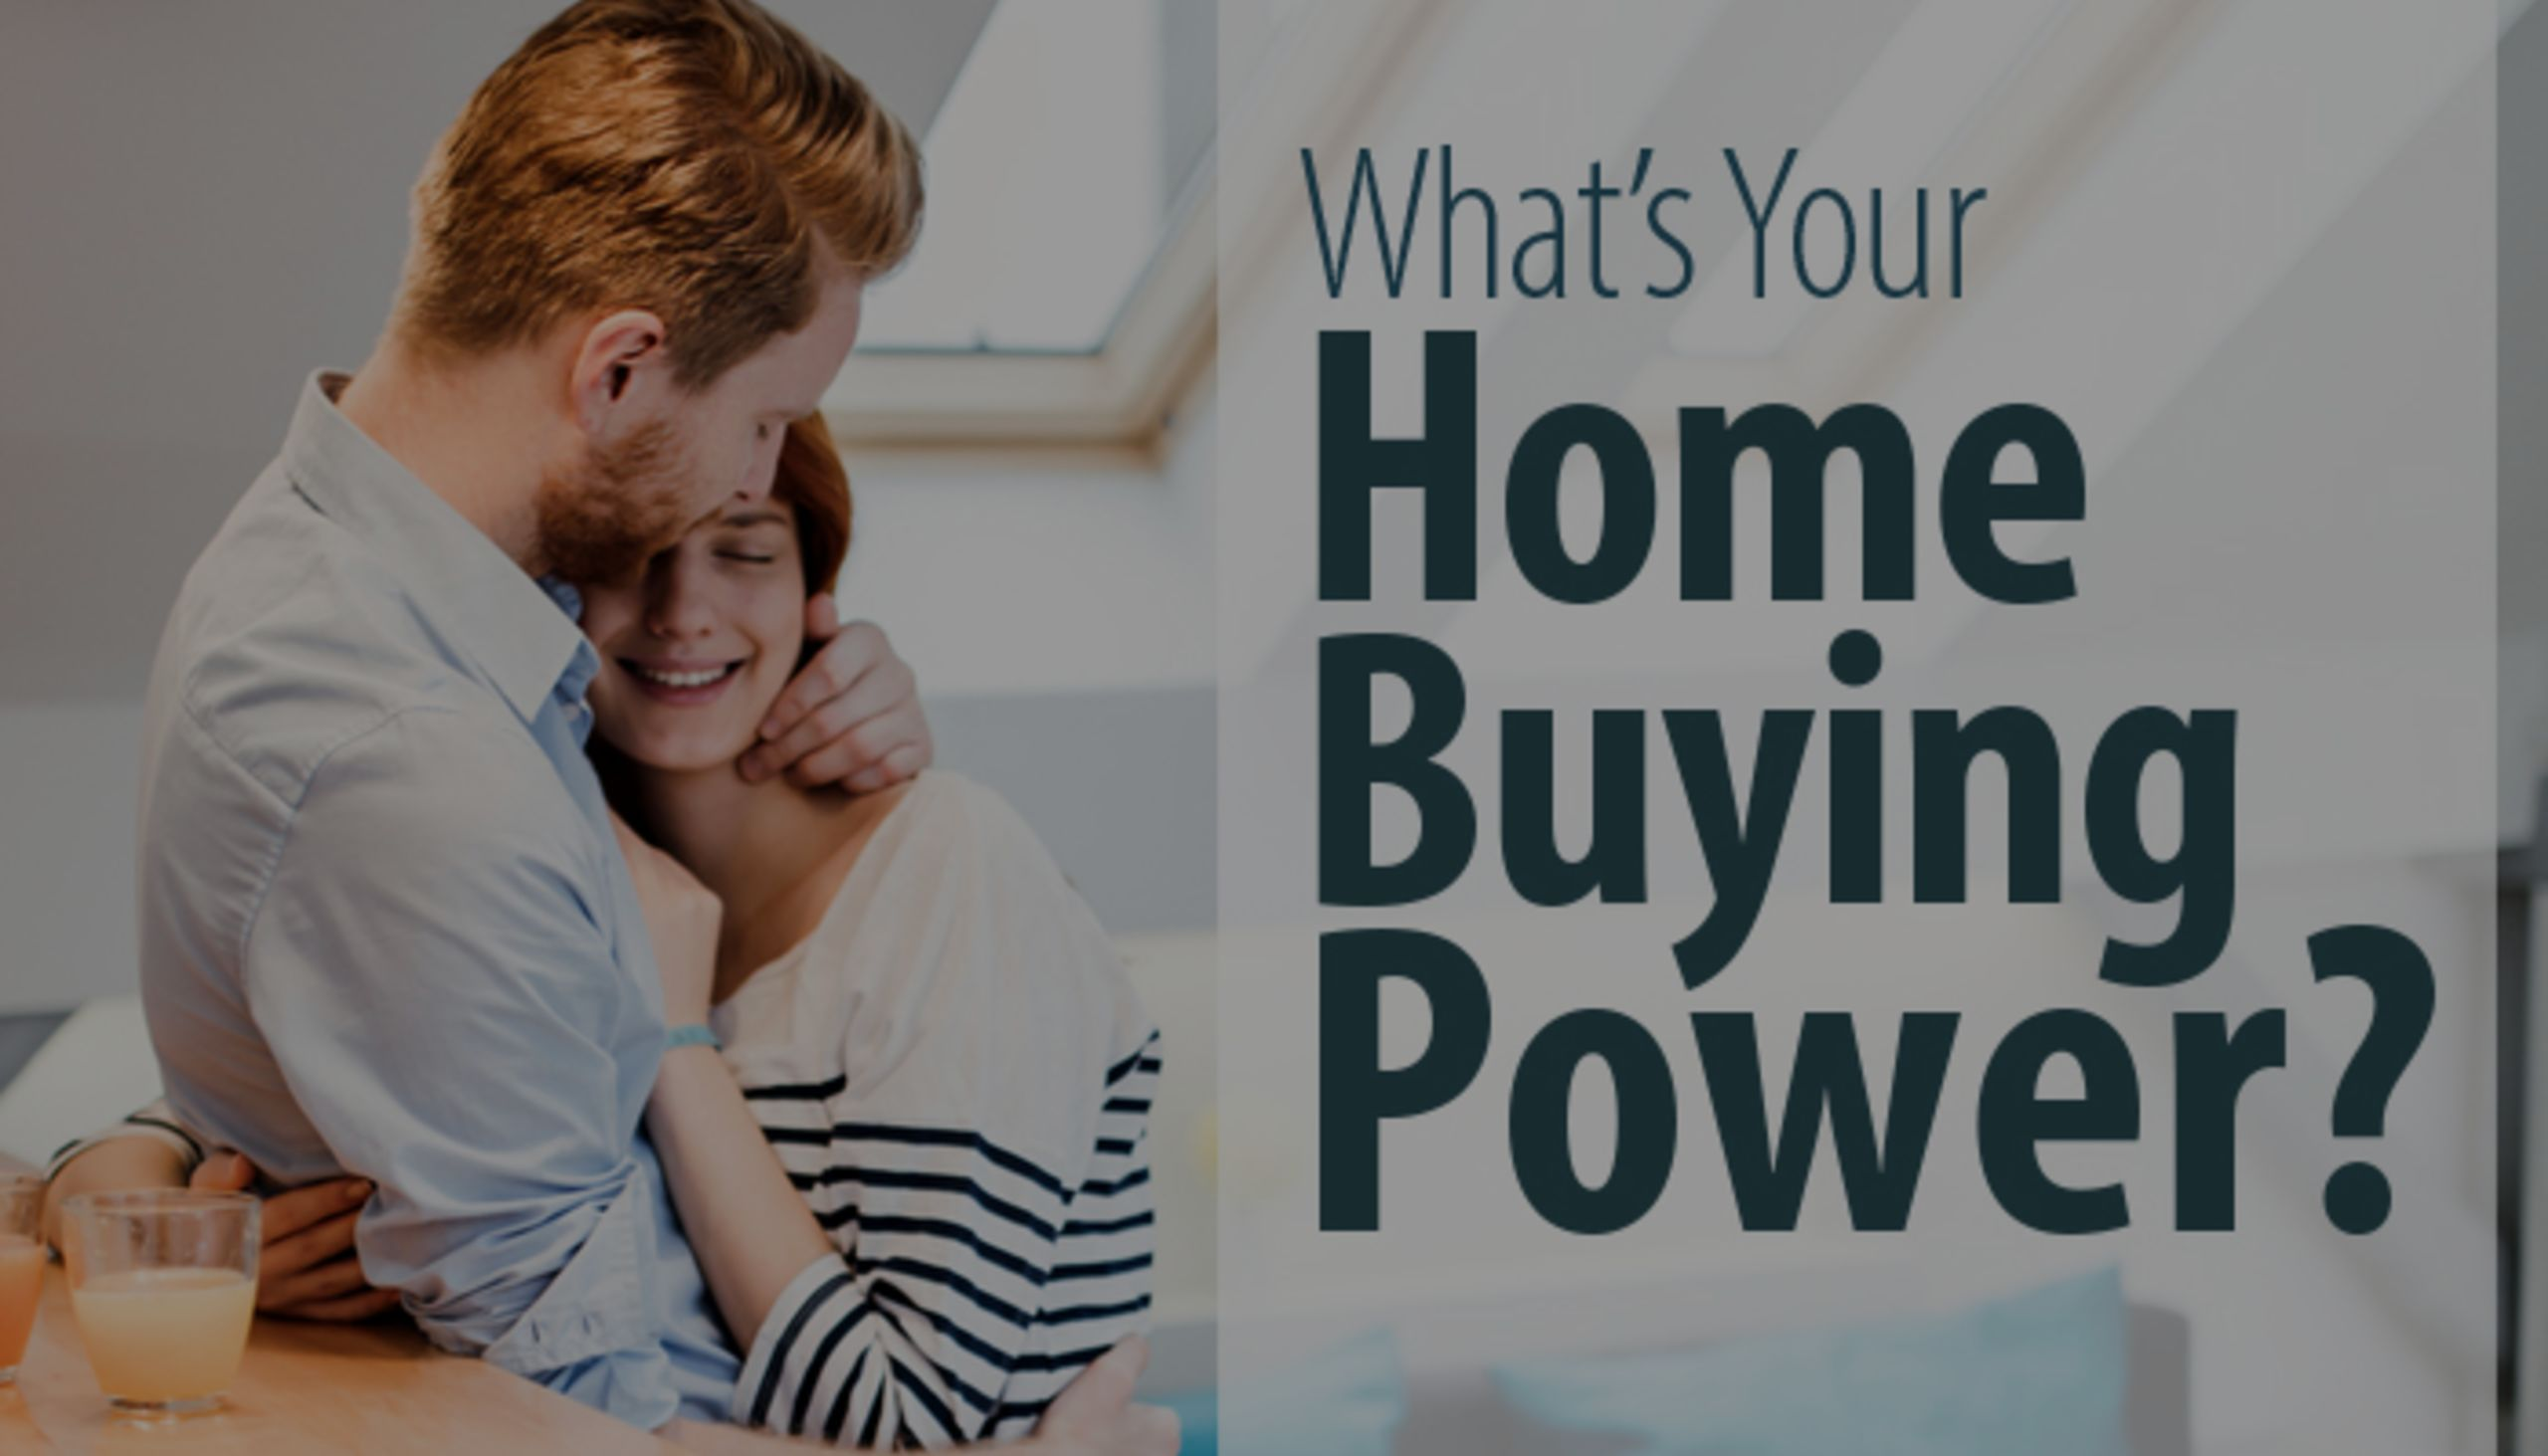 What Is Your Buying Power?